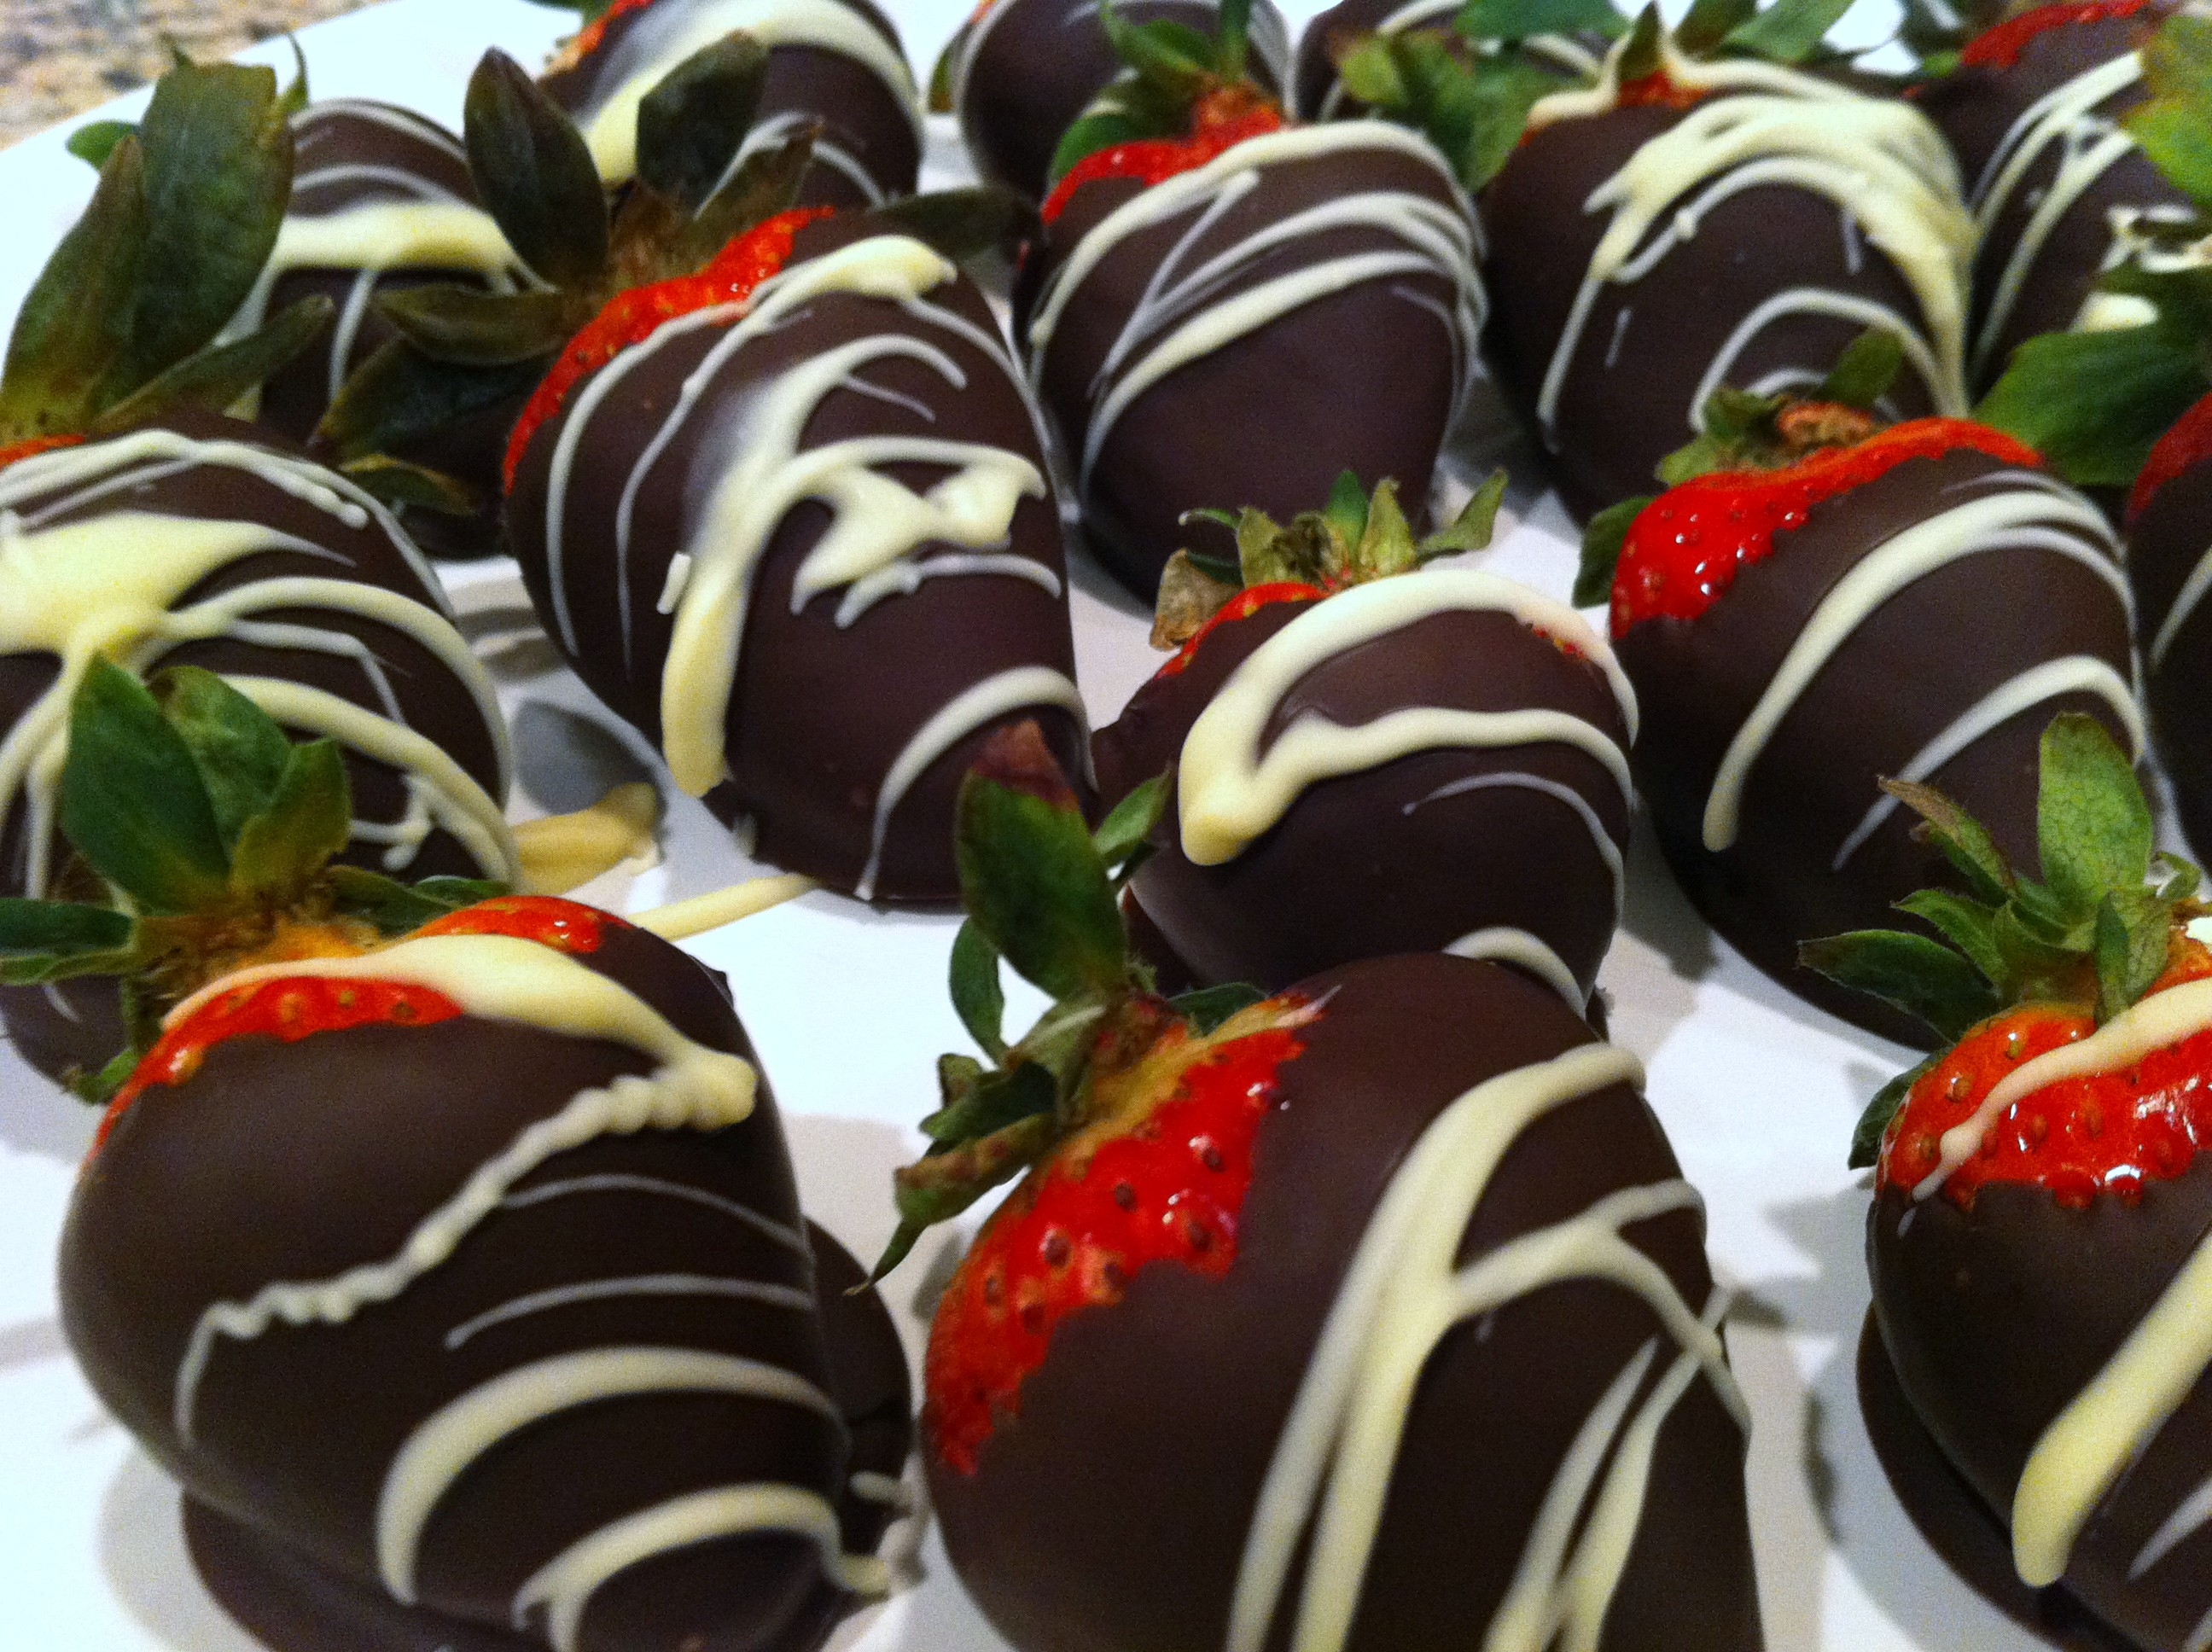 Chocolate Covered Strawberries - Andicakes